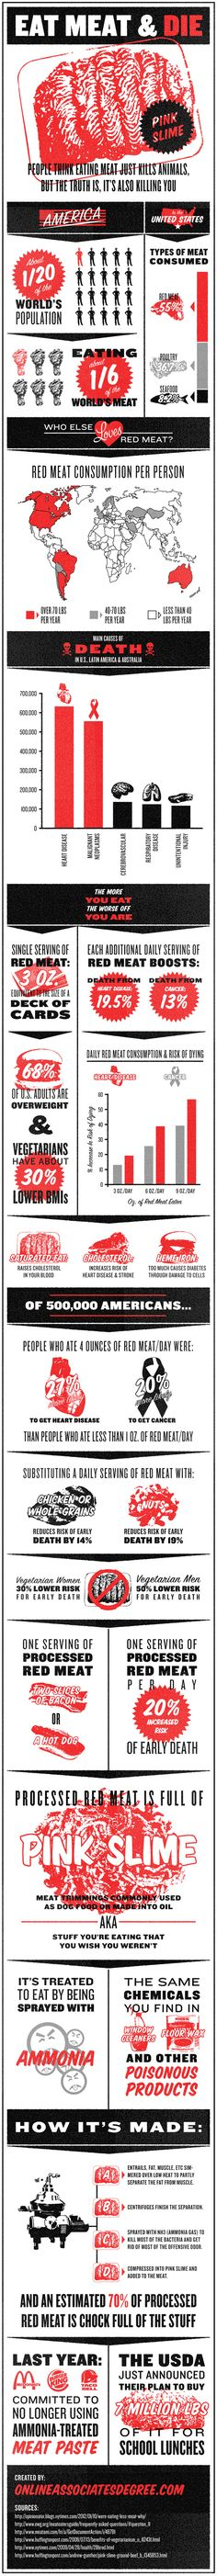 The graphic does a splendid job summarizing web links that coin vegetables/nuts/white meat as healthy alternatives to red meat. Consumers of red meat probably won't argue against this research, but they should play devil's advocate with the entire section highlighting the main causes of death in the U.S., Latin America and Australia. According to the chart, the leading cause of death in these three countries is heart disease.